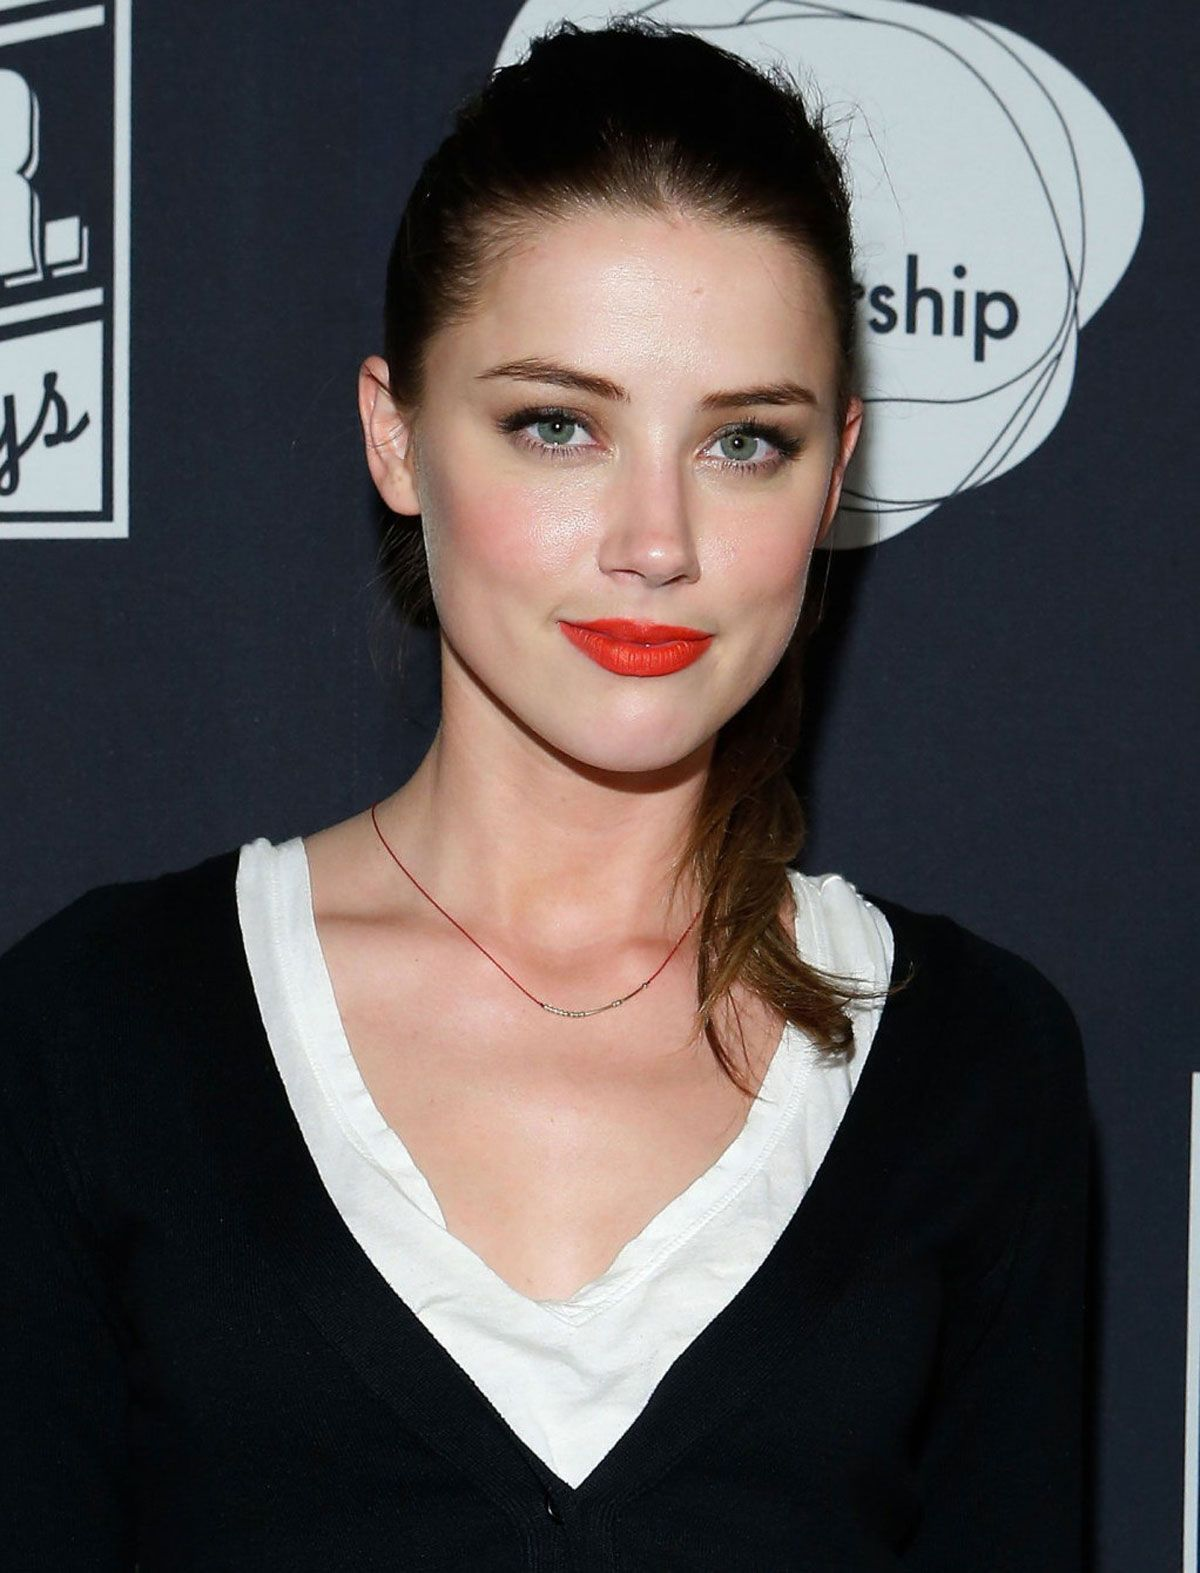 Luxurious glitter and glamour Amber Heard Fabulous Hairstyles... A fan of muscle cars, she drives a 1968 Ford Mustang